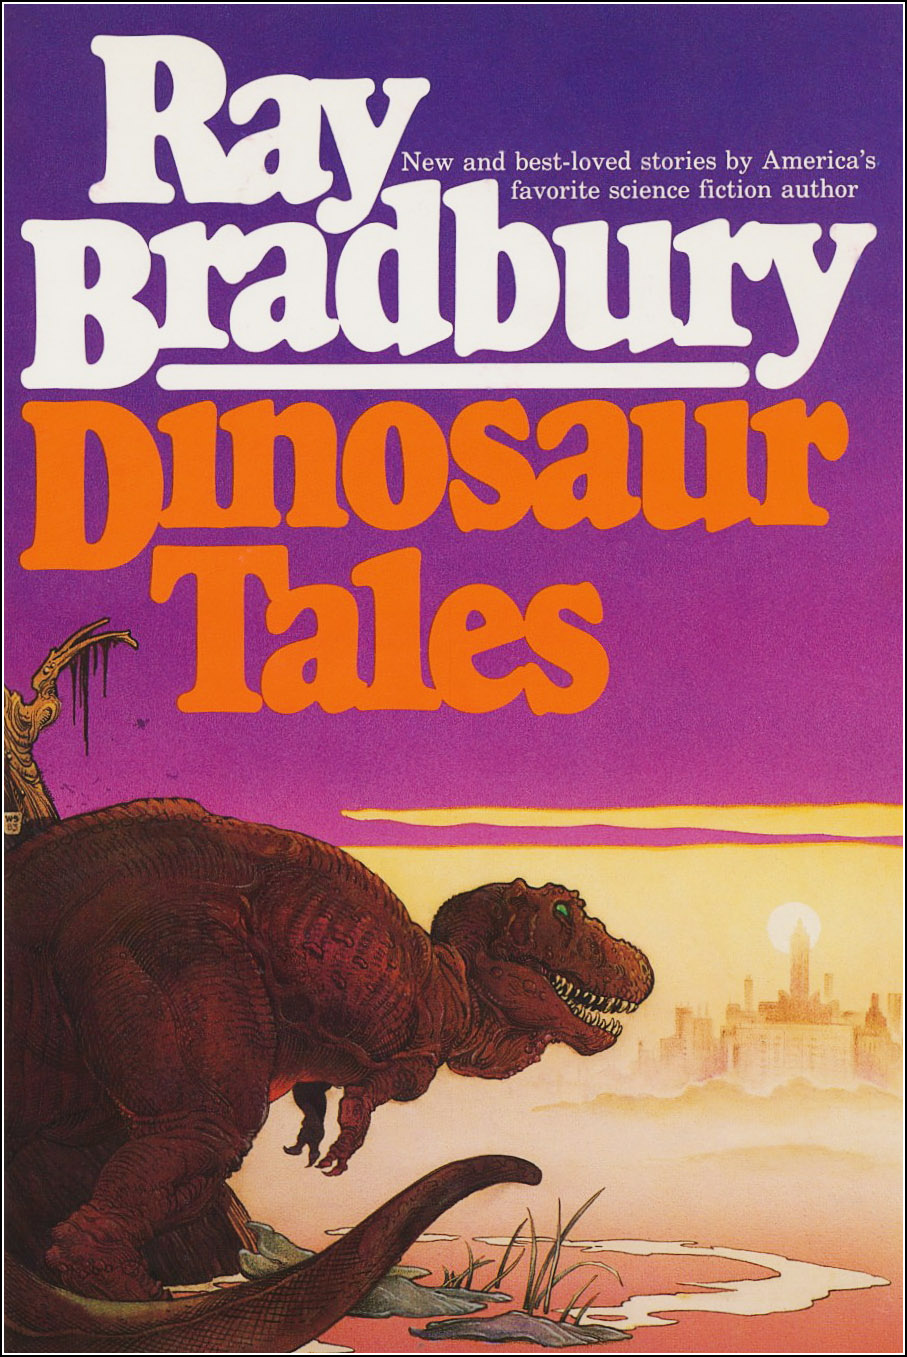 William Stout, Dinosaur Tales